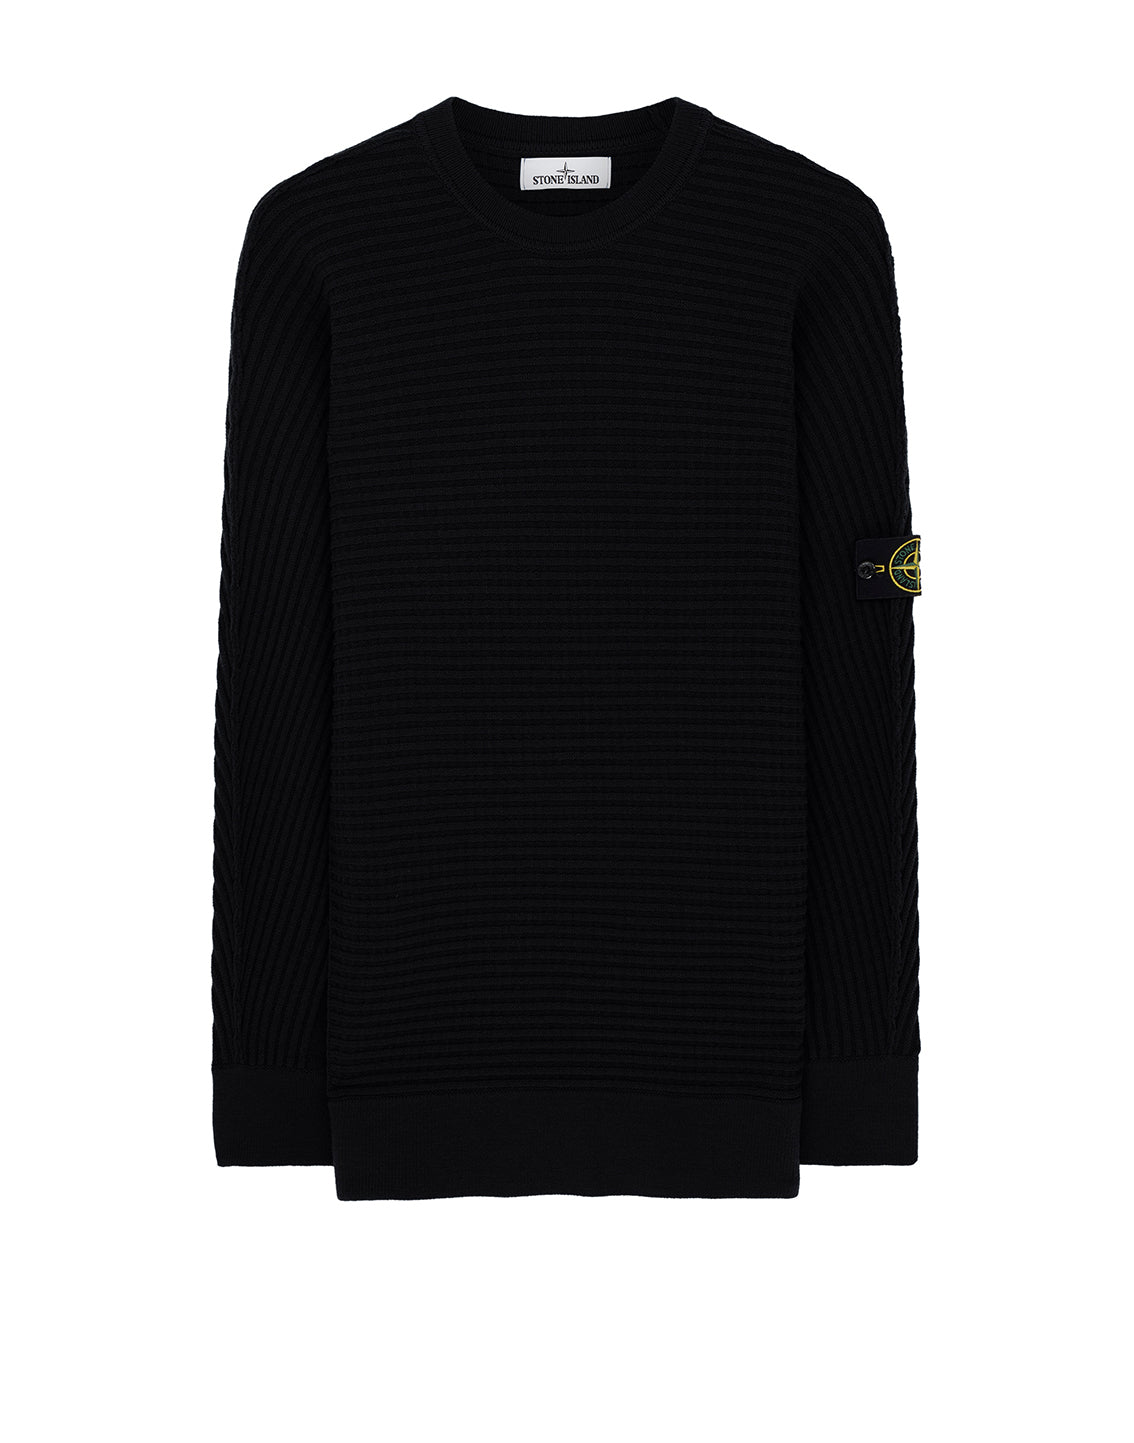 502A1 Crewneck Jumper in Black